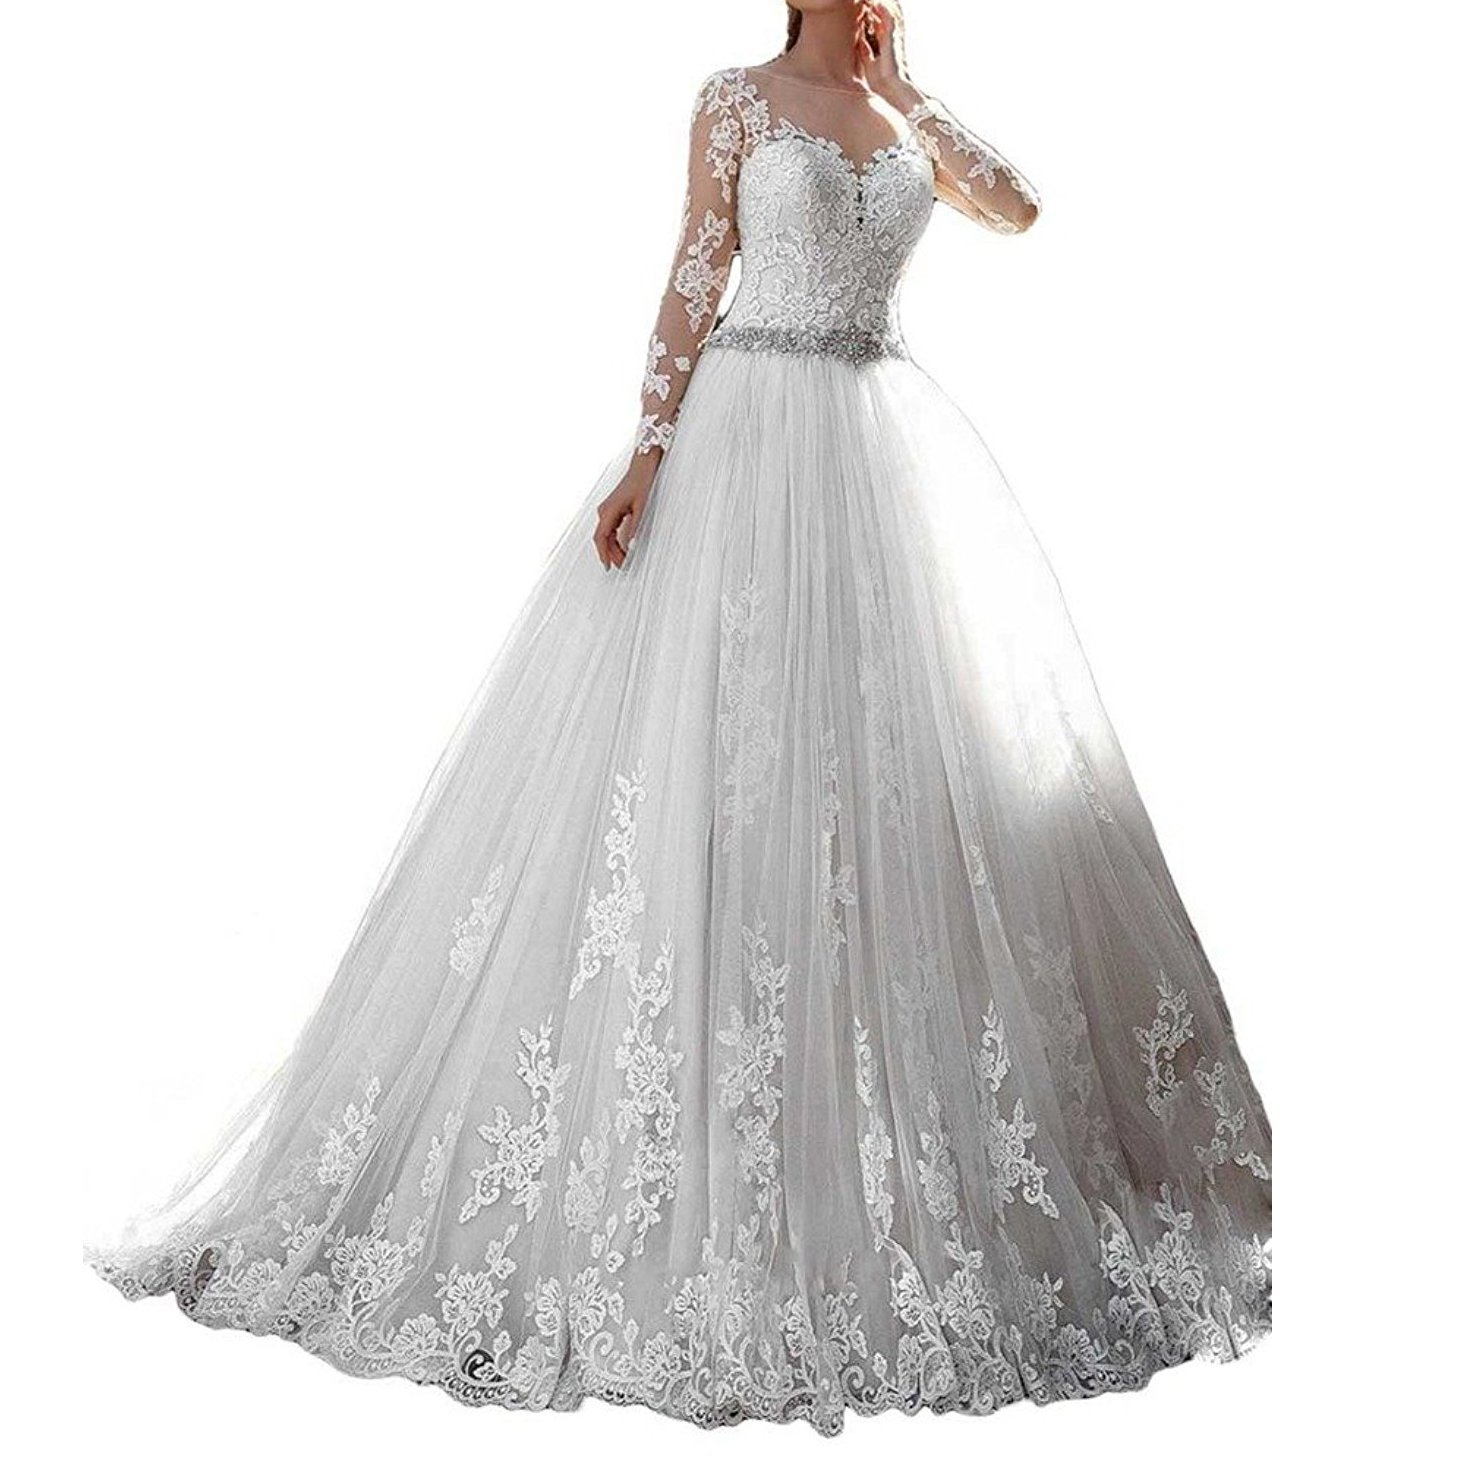 westcorler Luxury Wedding Dress Long Sleeves Ball Gown Lace Wedding Dresses (18plus, White)